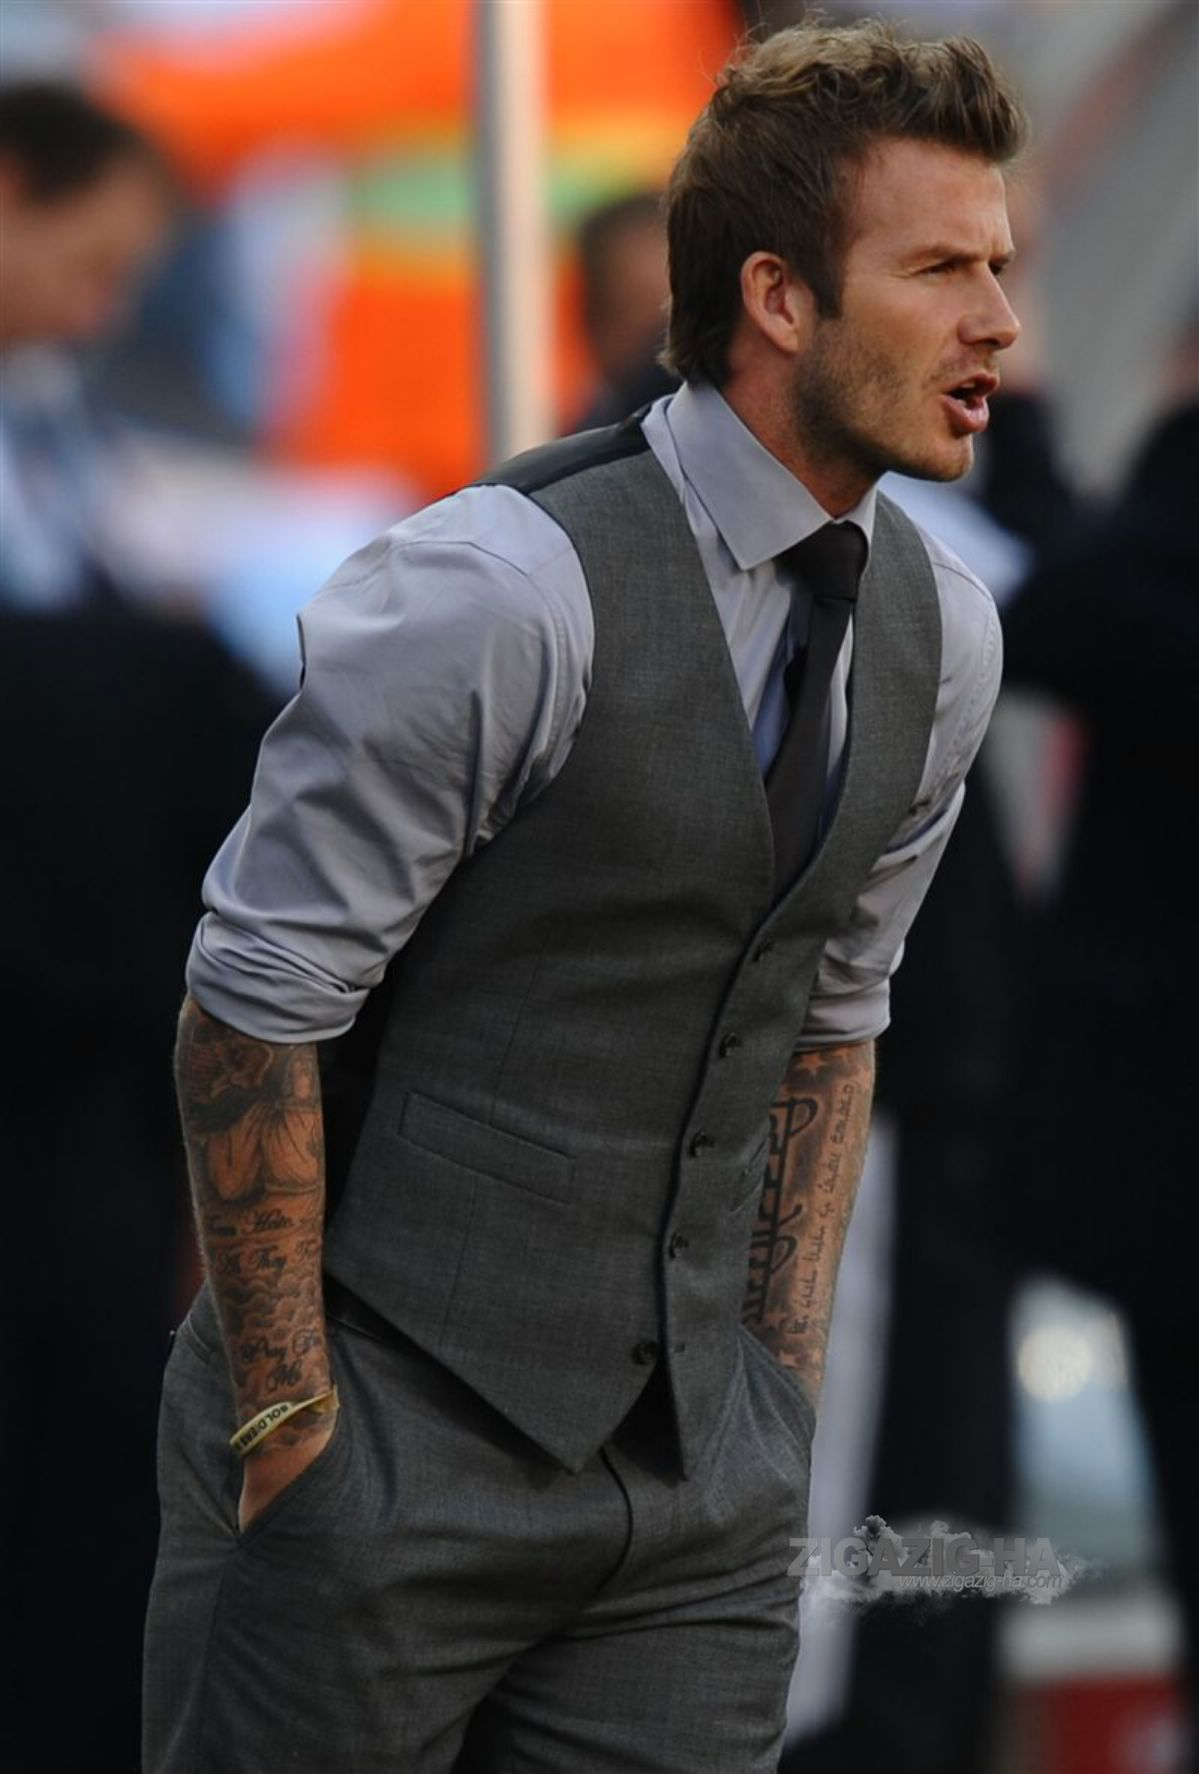 Opt for a charcoal or gray suit over black